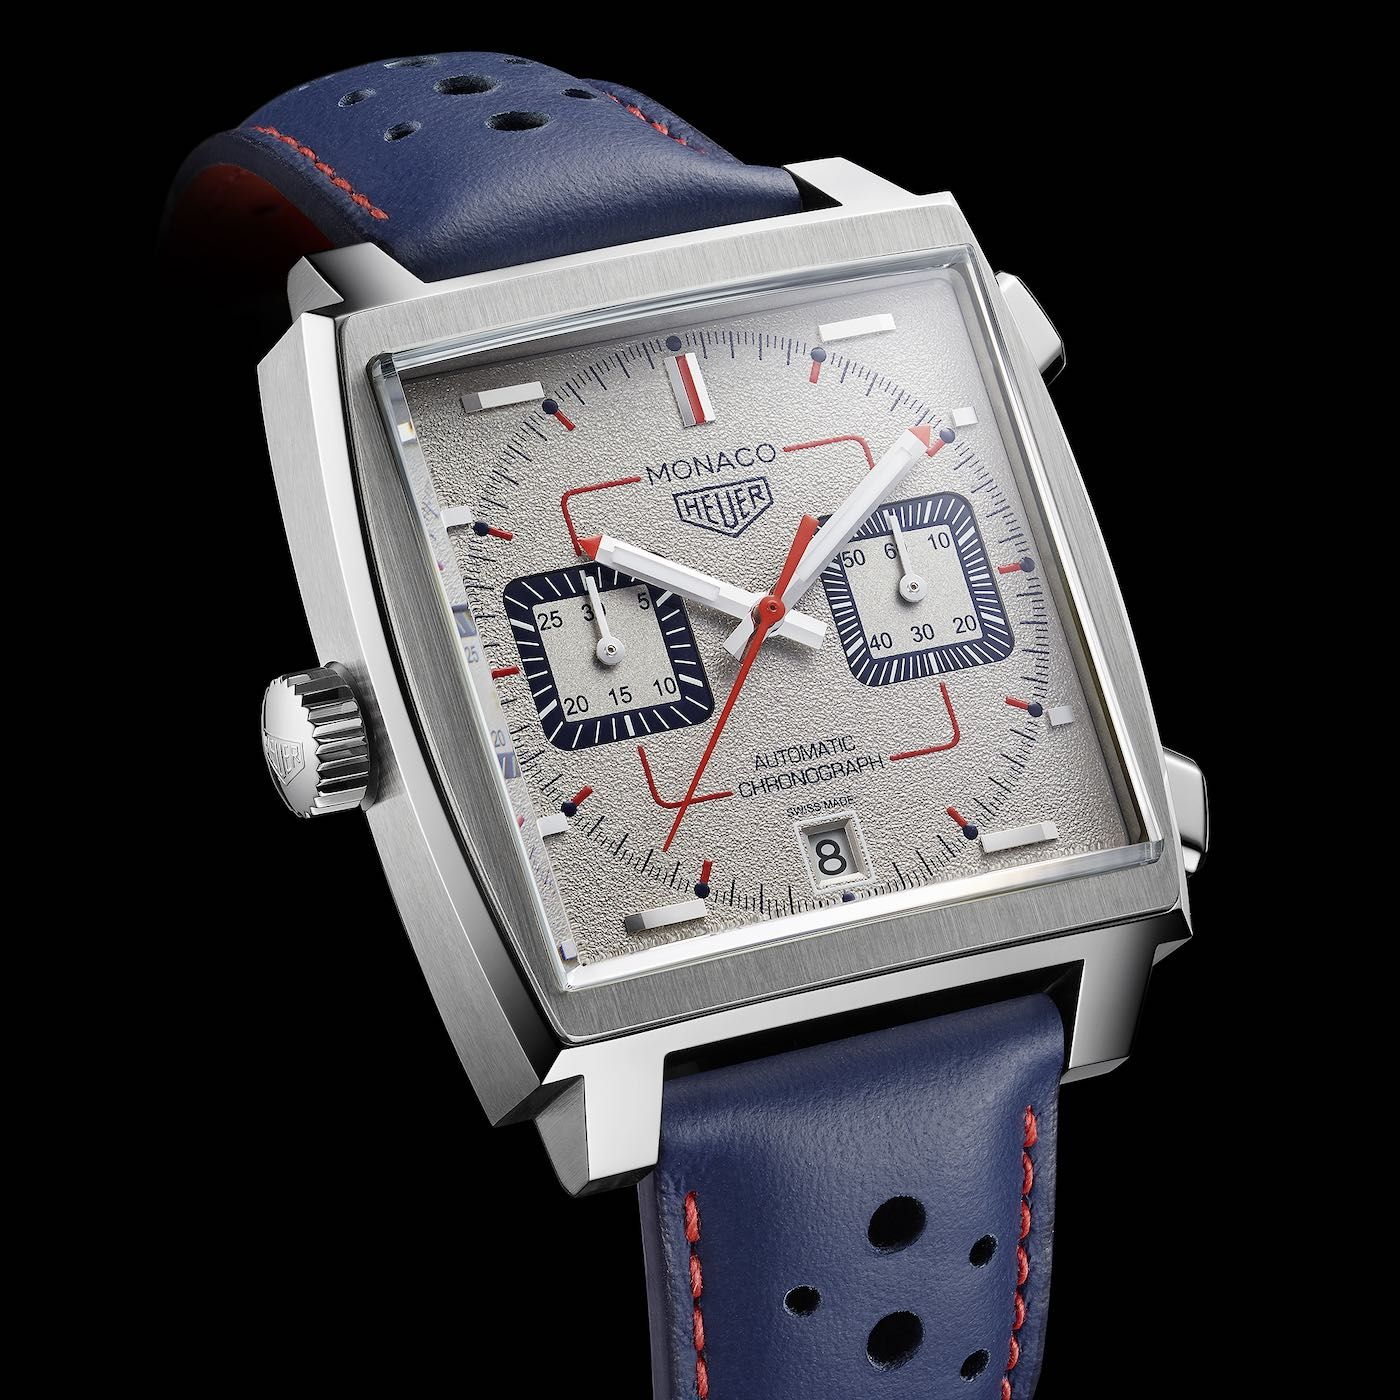 Tag Heuer Monaco 1989 1999 Limited Edition Watch Celebrates The